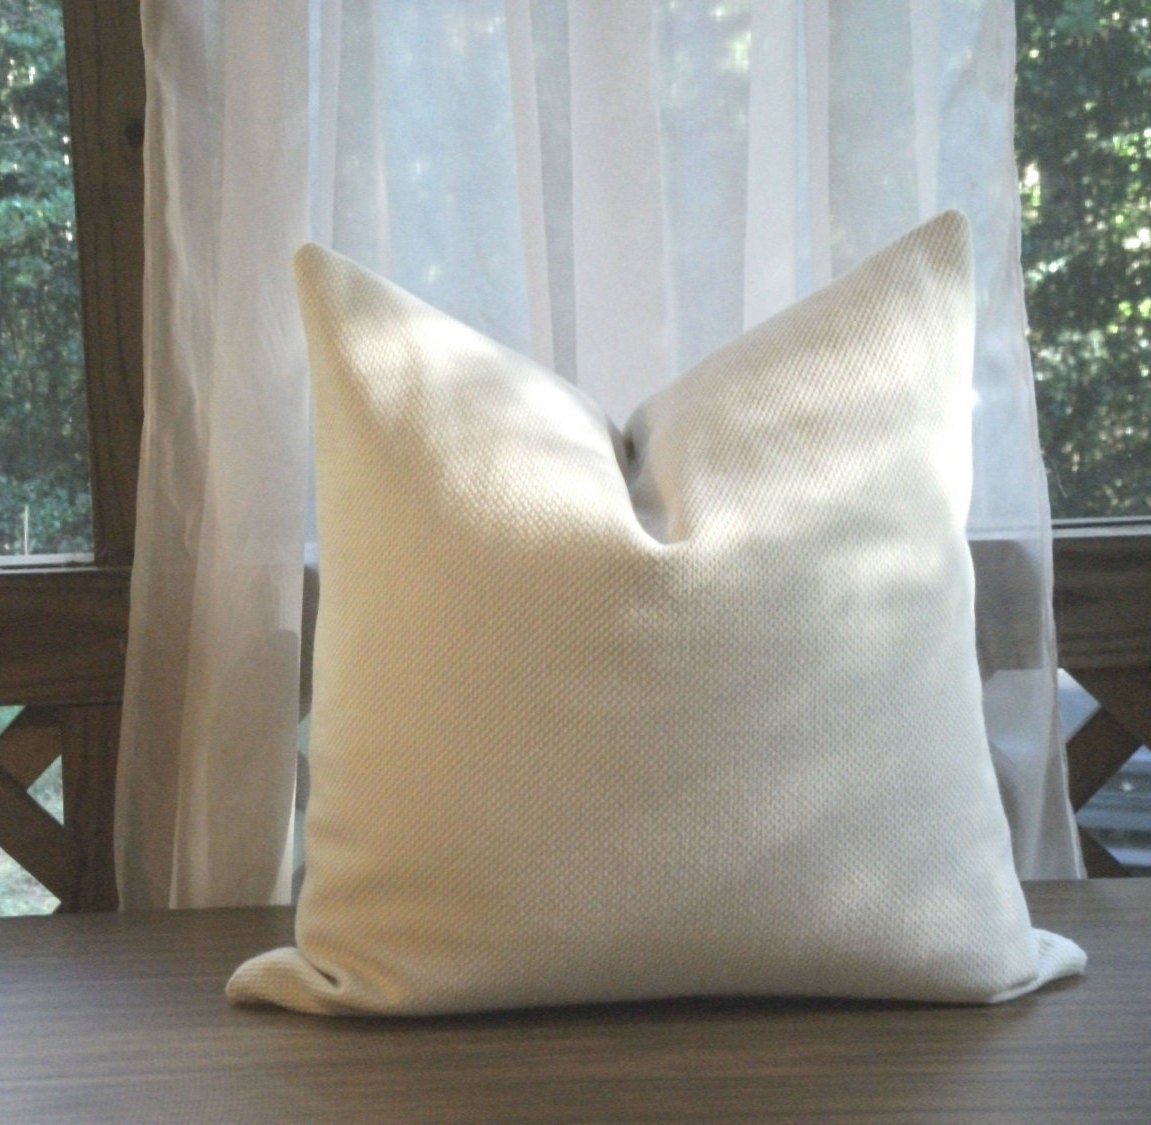 cream colored sofa pillows simmons beds toronto textured pillow cover large by joyfortunedesigns